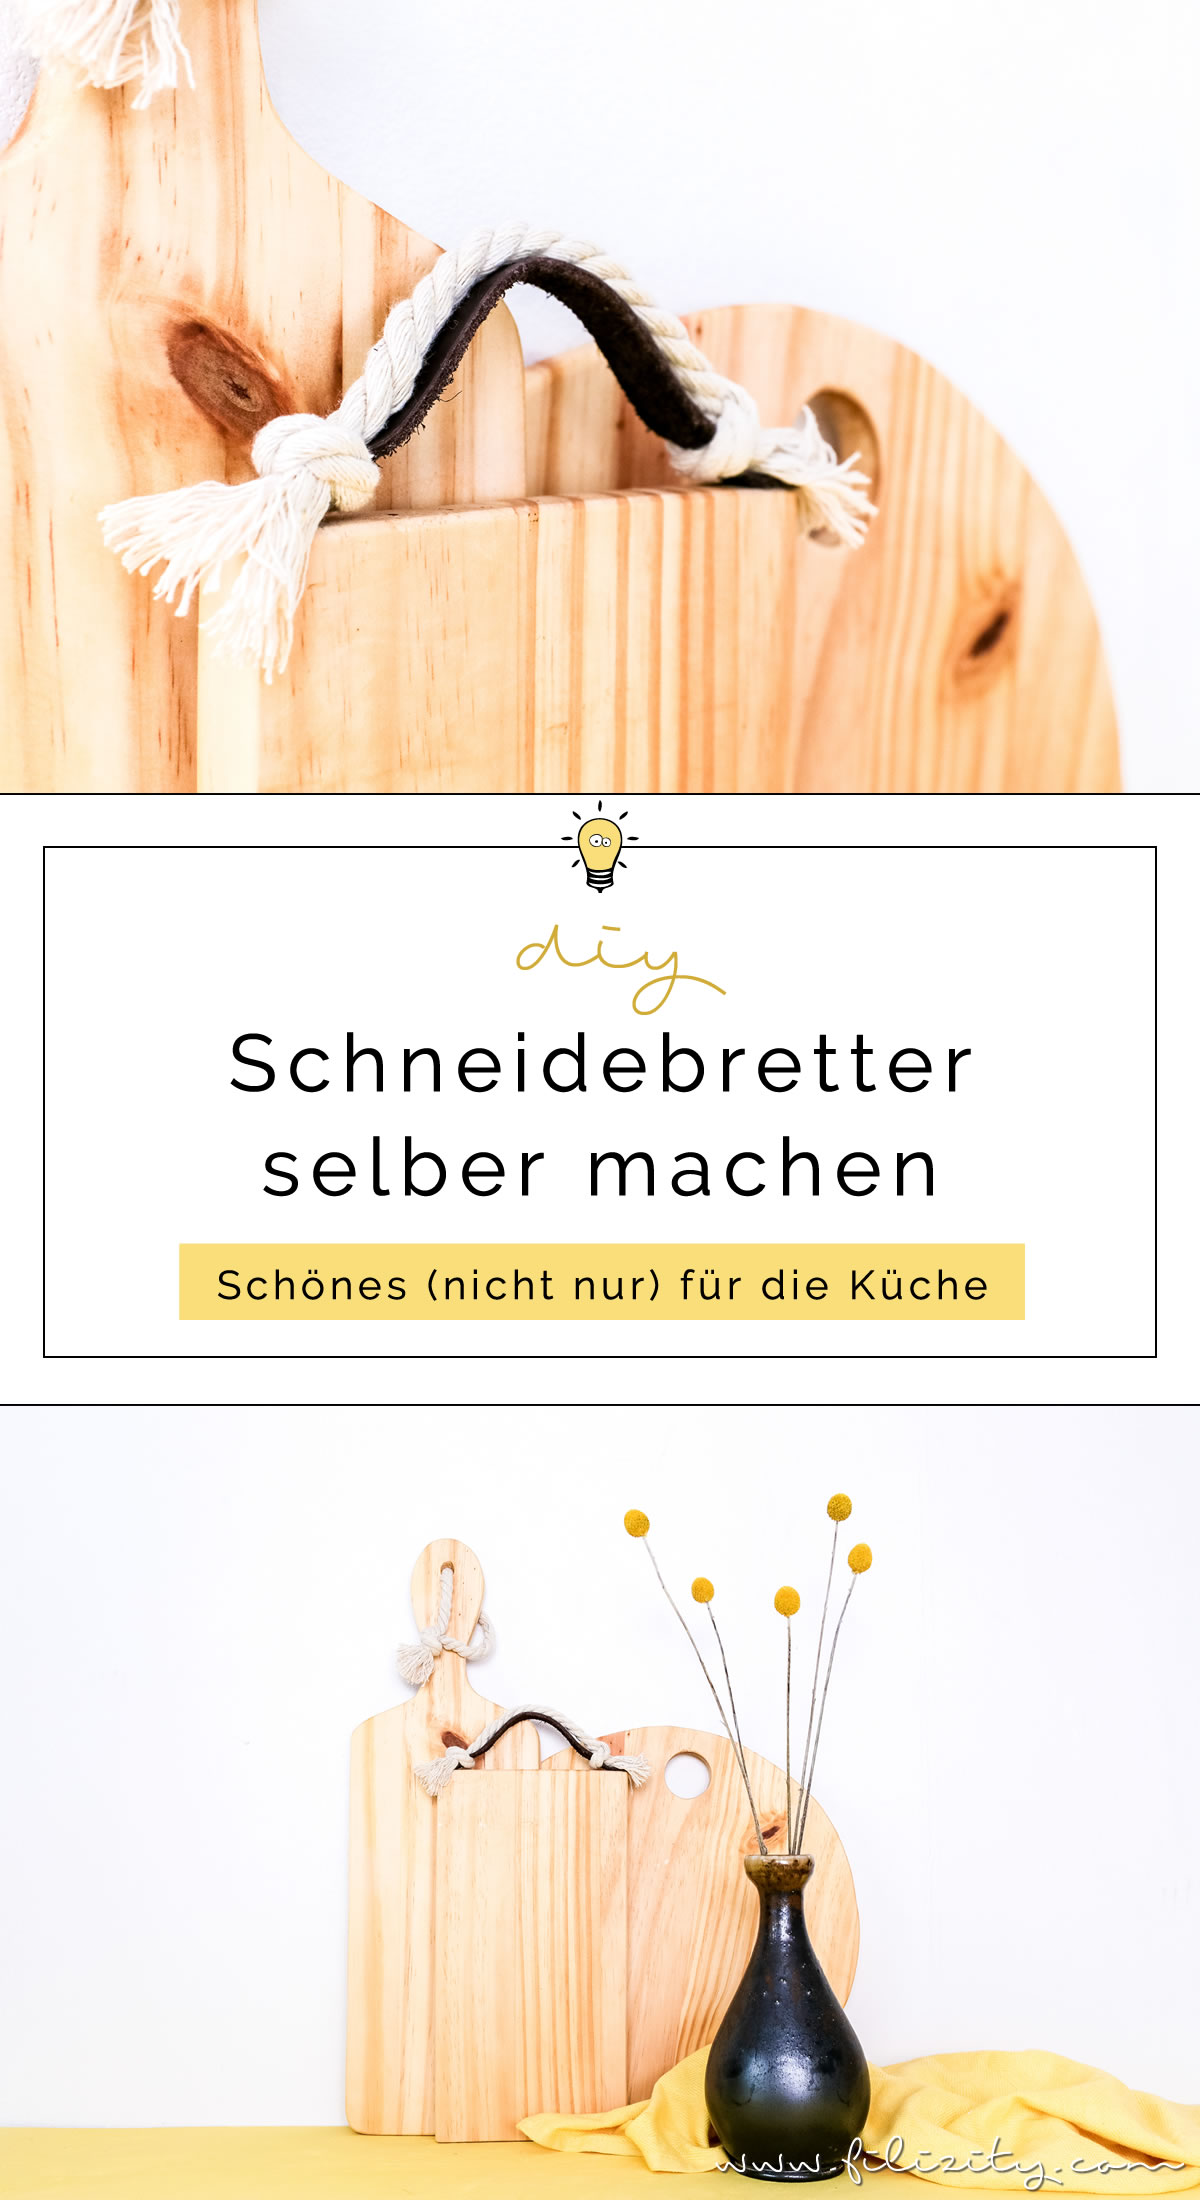 diy k chen deko holz k chenbretter selber machen diy blog aus dem rheinland. Black Bedroom Furniture Sets. Home Design Ideas